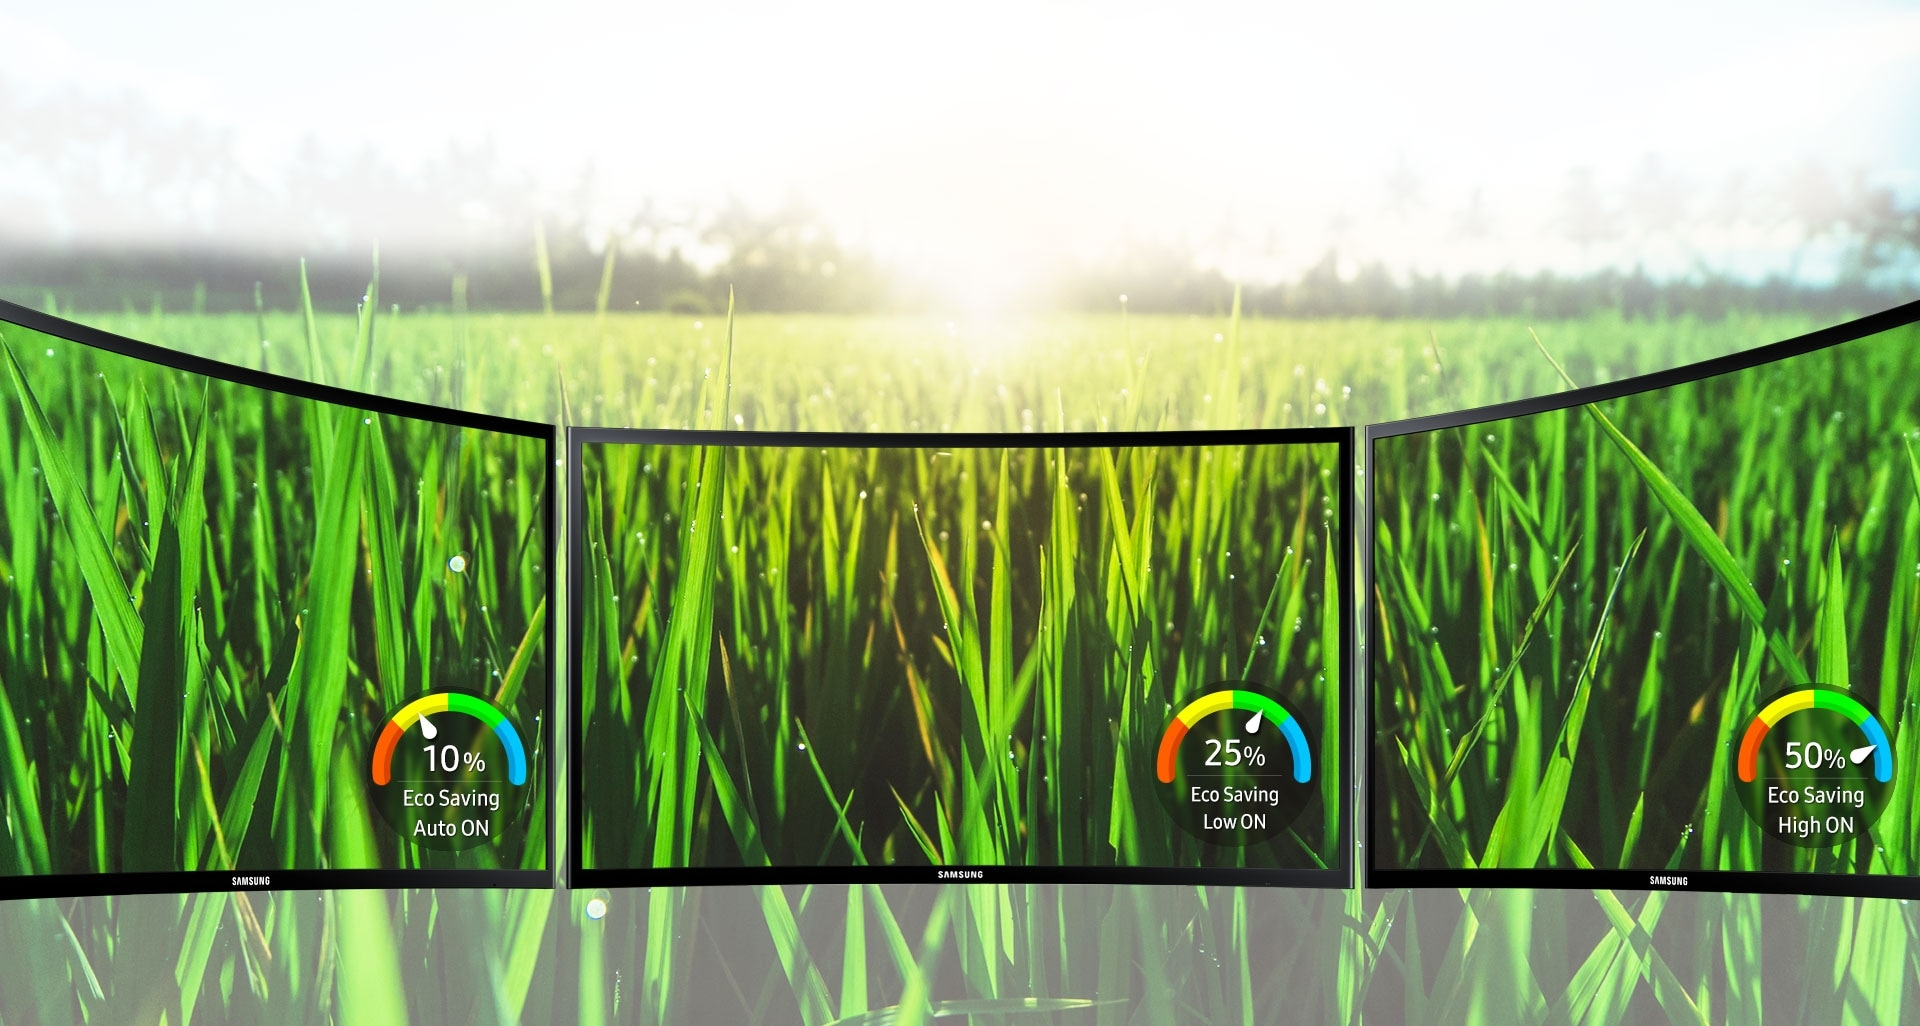 Samsung eco-saving technology reduces energy consumption and environmental impact